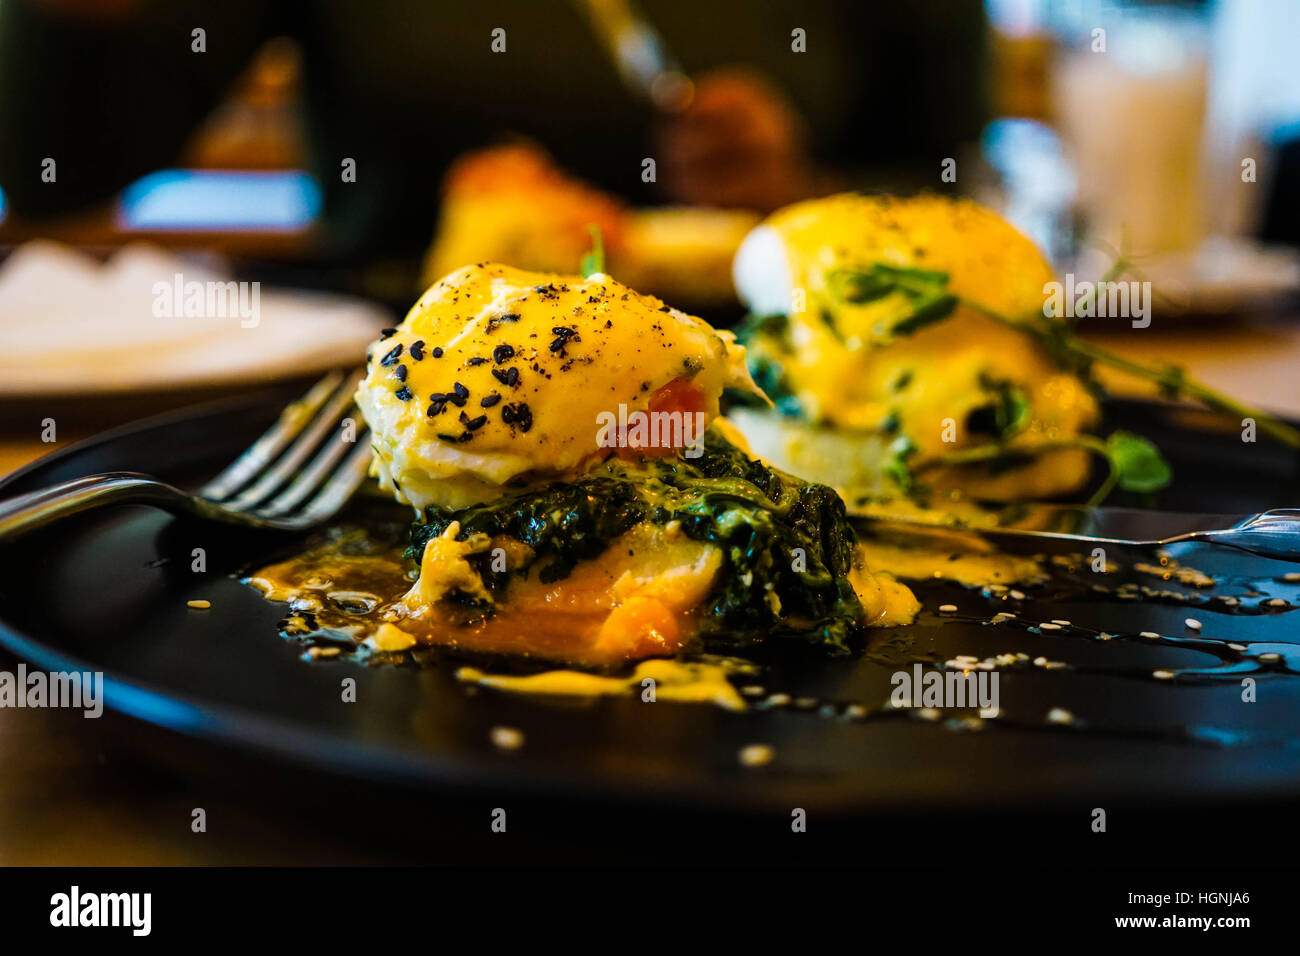 Eggs Florentine close up on a black plate with a fork also in shot - Stock Image